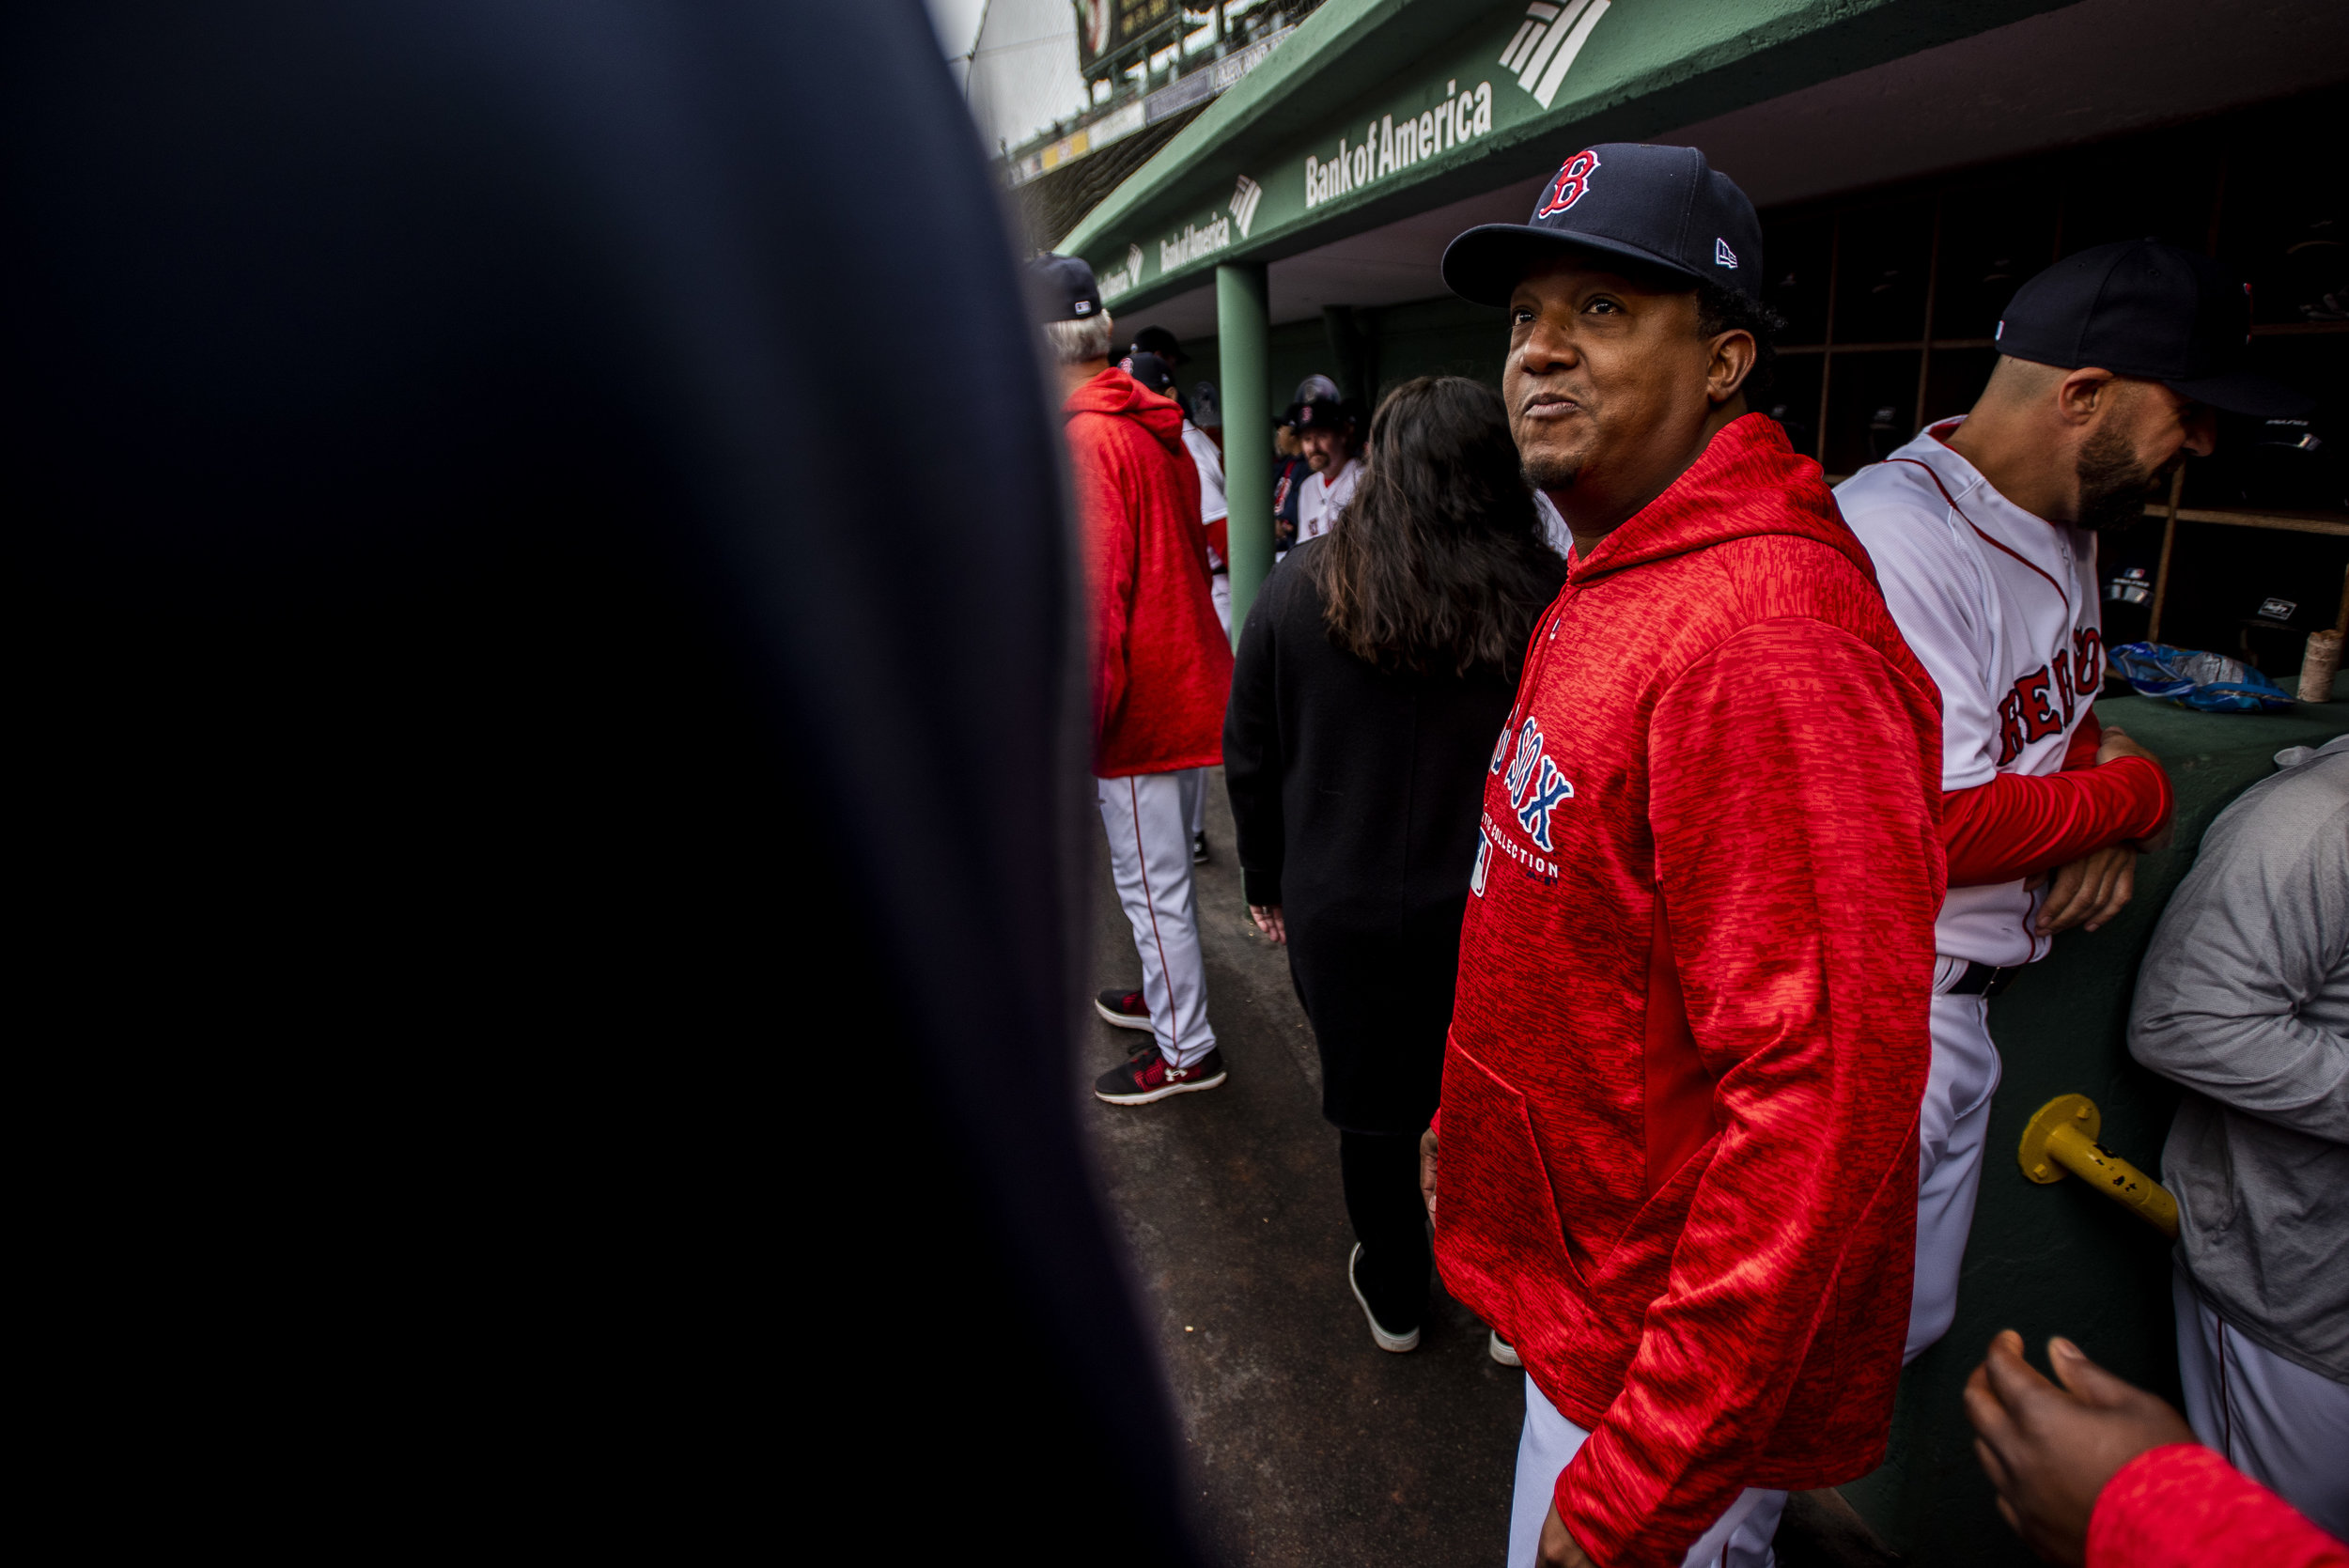 May 27, 2018, Boston, MA: Pedro Martinez hangs out in the dugout during the Red Sox Alumni Game at Fenway Park in Boston, Massachusetts on Sunday, May 27, 2018. (Photo by Matthew Thomas/Boston Red Sox)